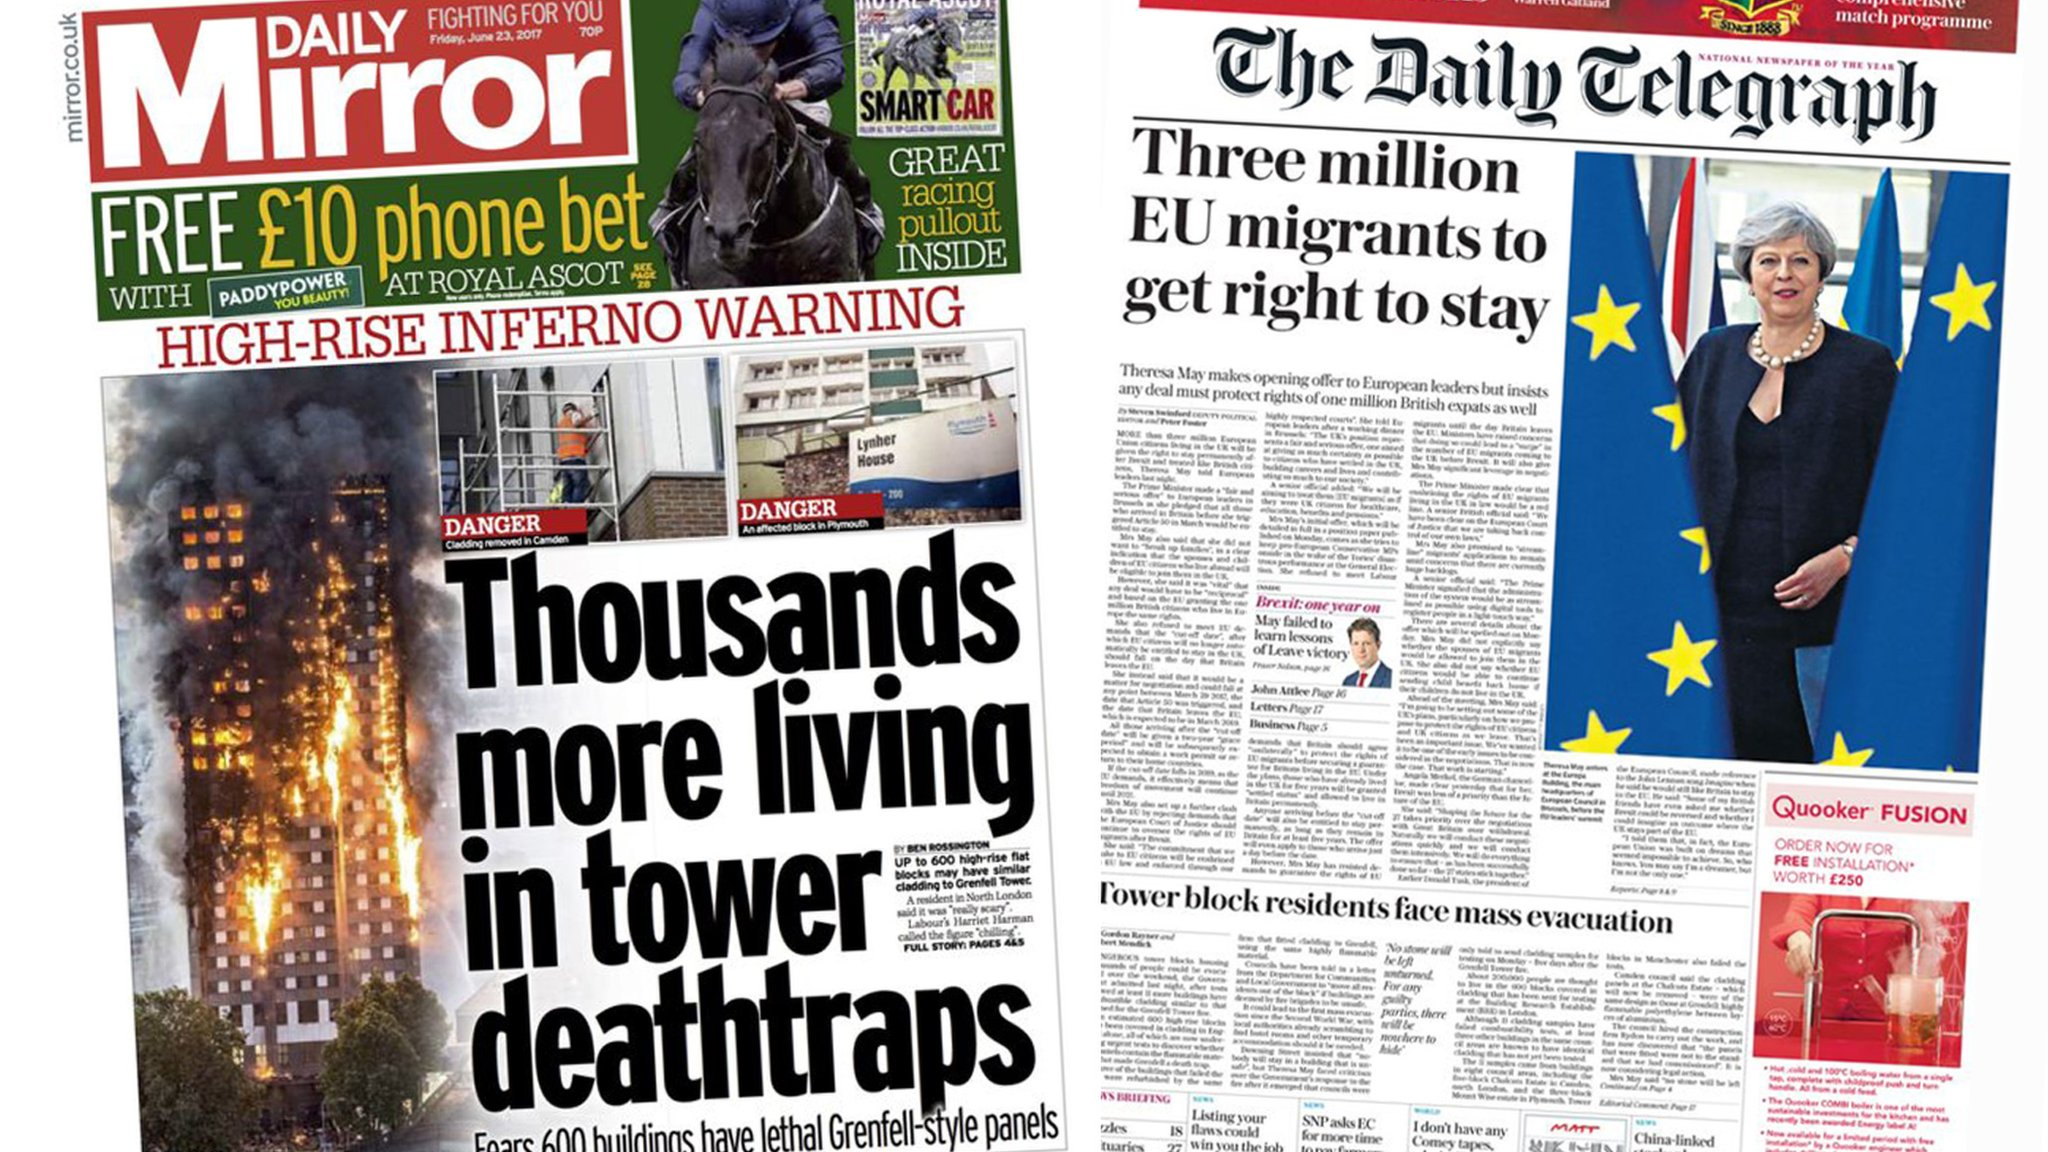 Newspaper headlines: Tower 'death traps' and EU migrant rights